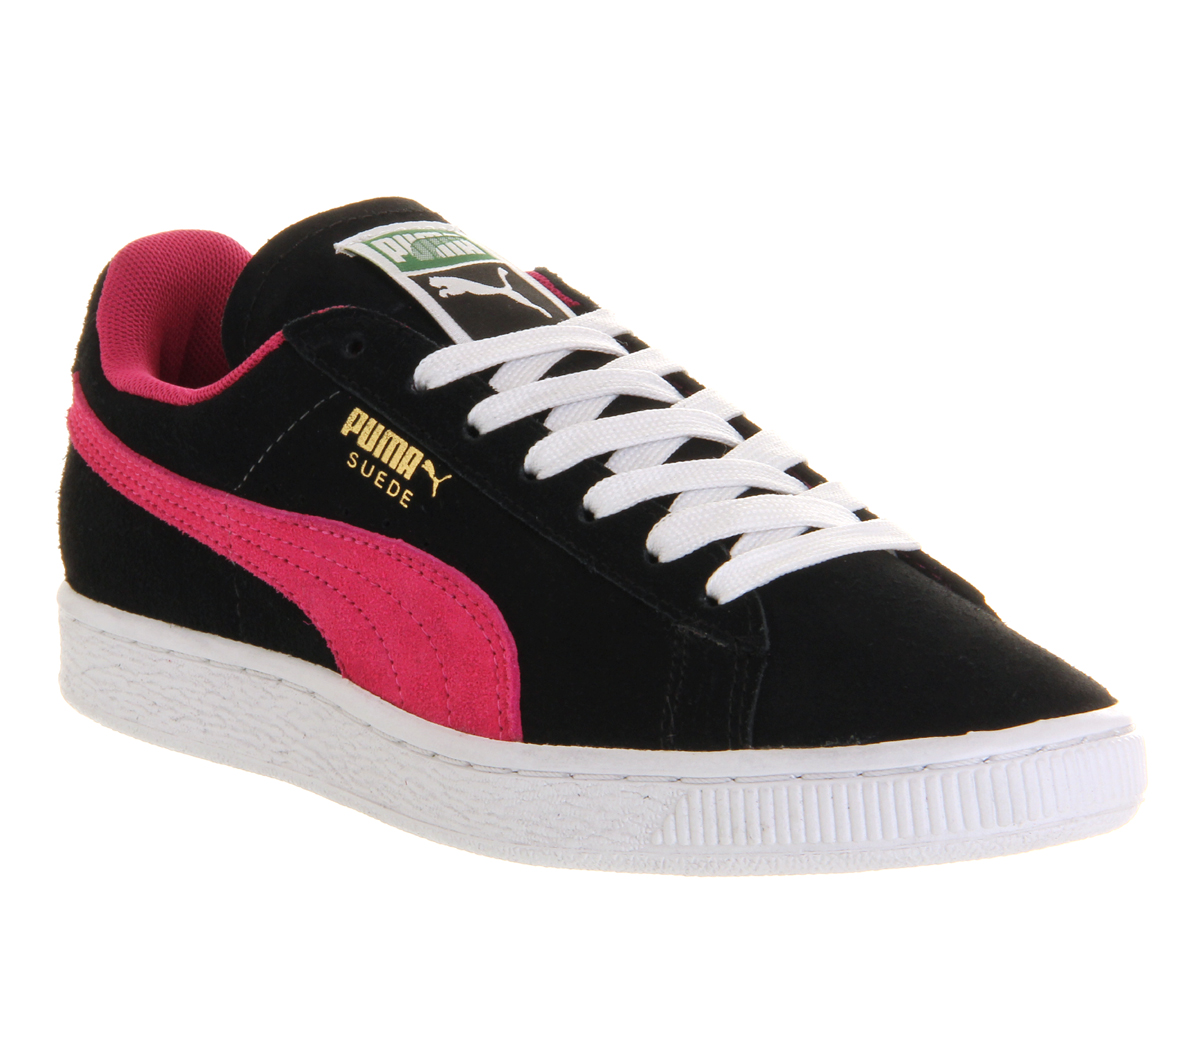 mens puma suede classic black pink w trainers shoes ebay. Black Bedroom Furniture Sets. Home Design Ideas